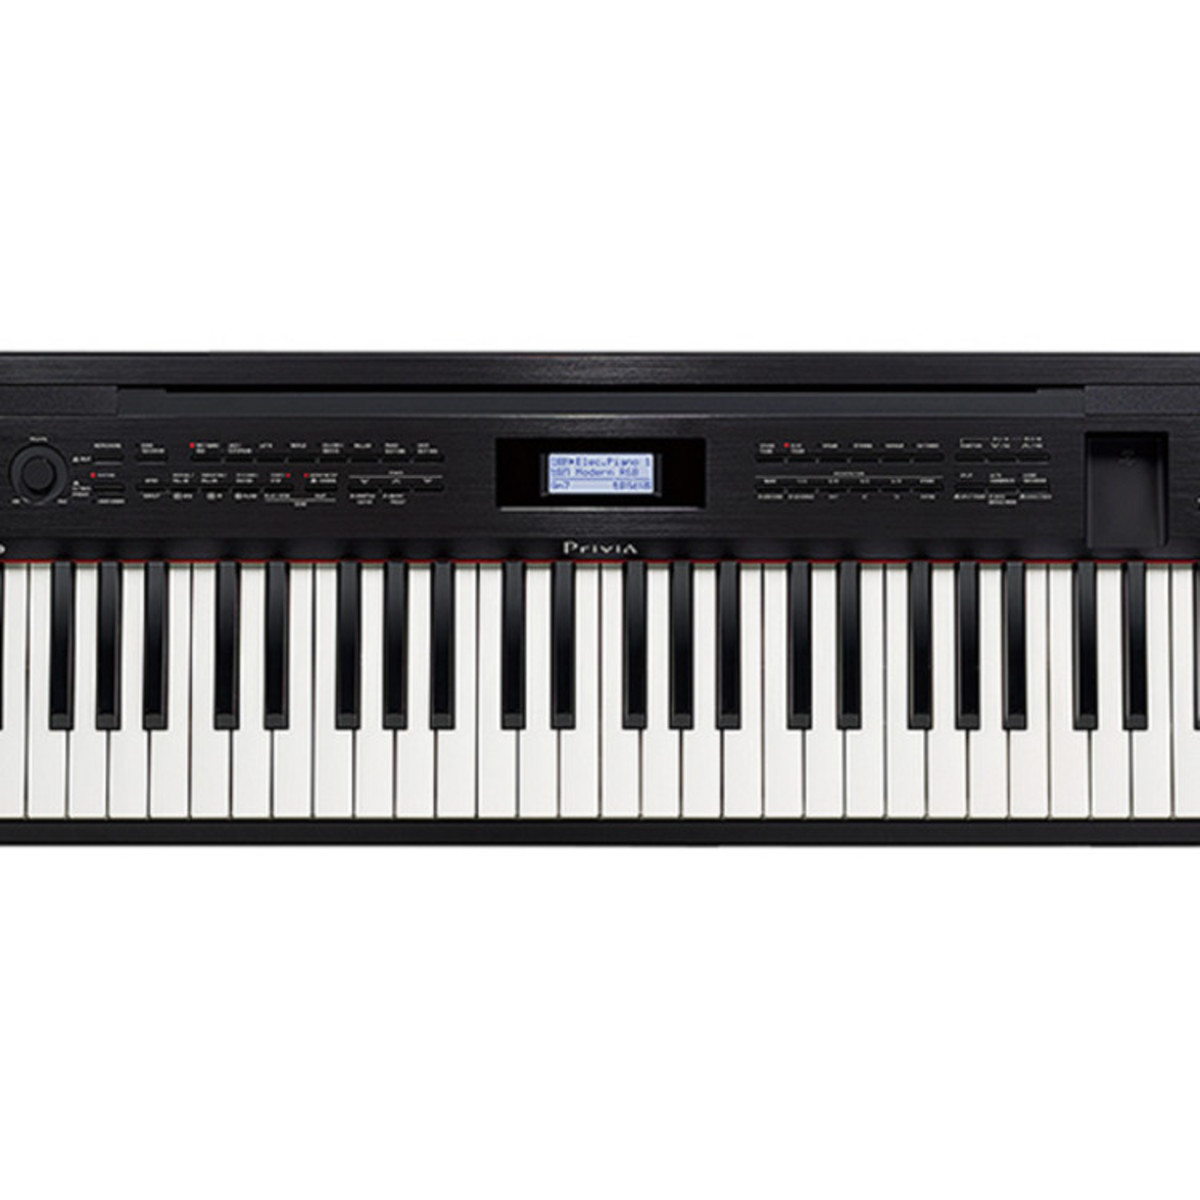 casio privia px 350 digital piano nearly new at. Black Bedroom Furniture Sets. Home Design Ideas